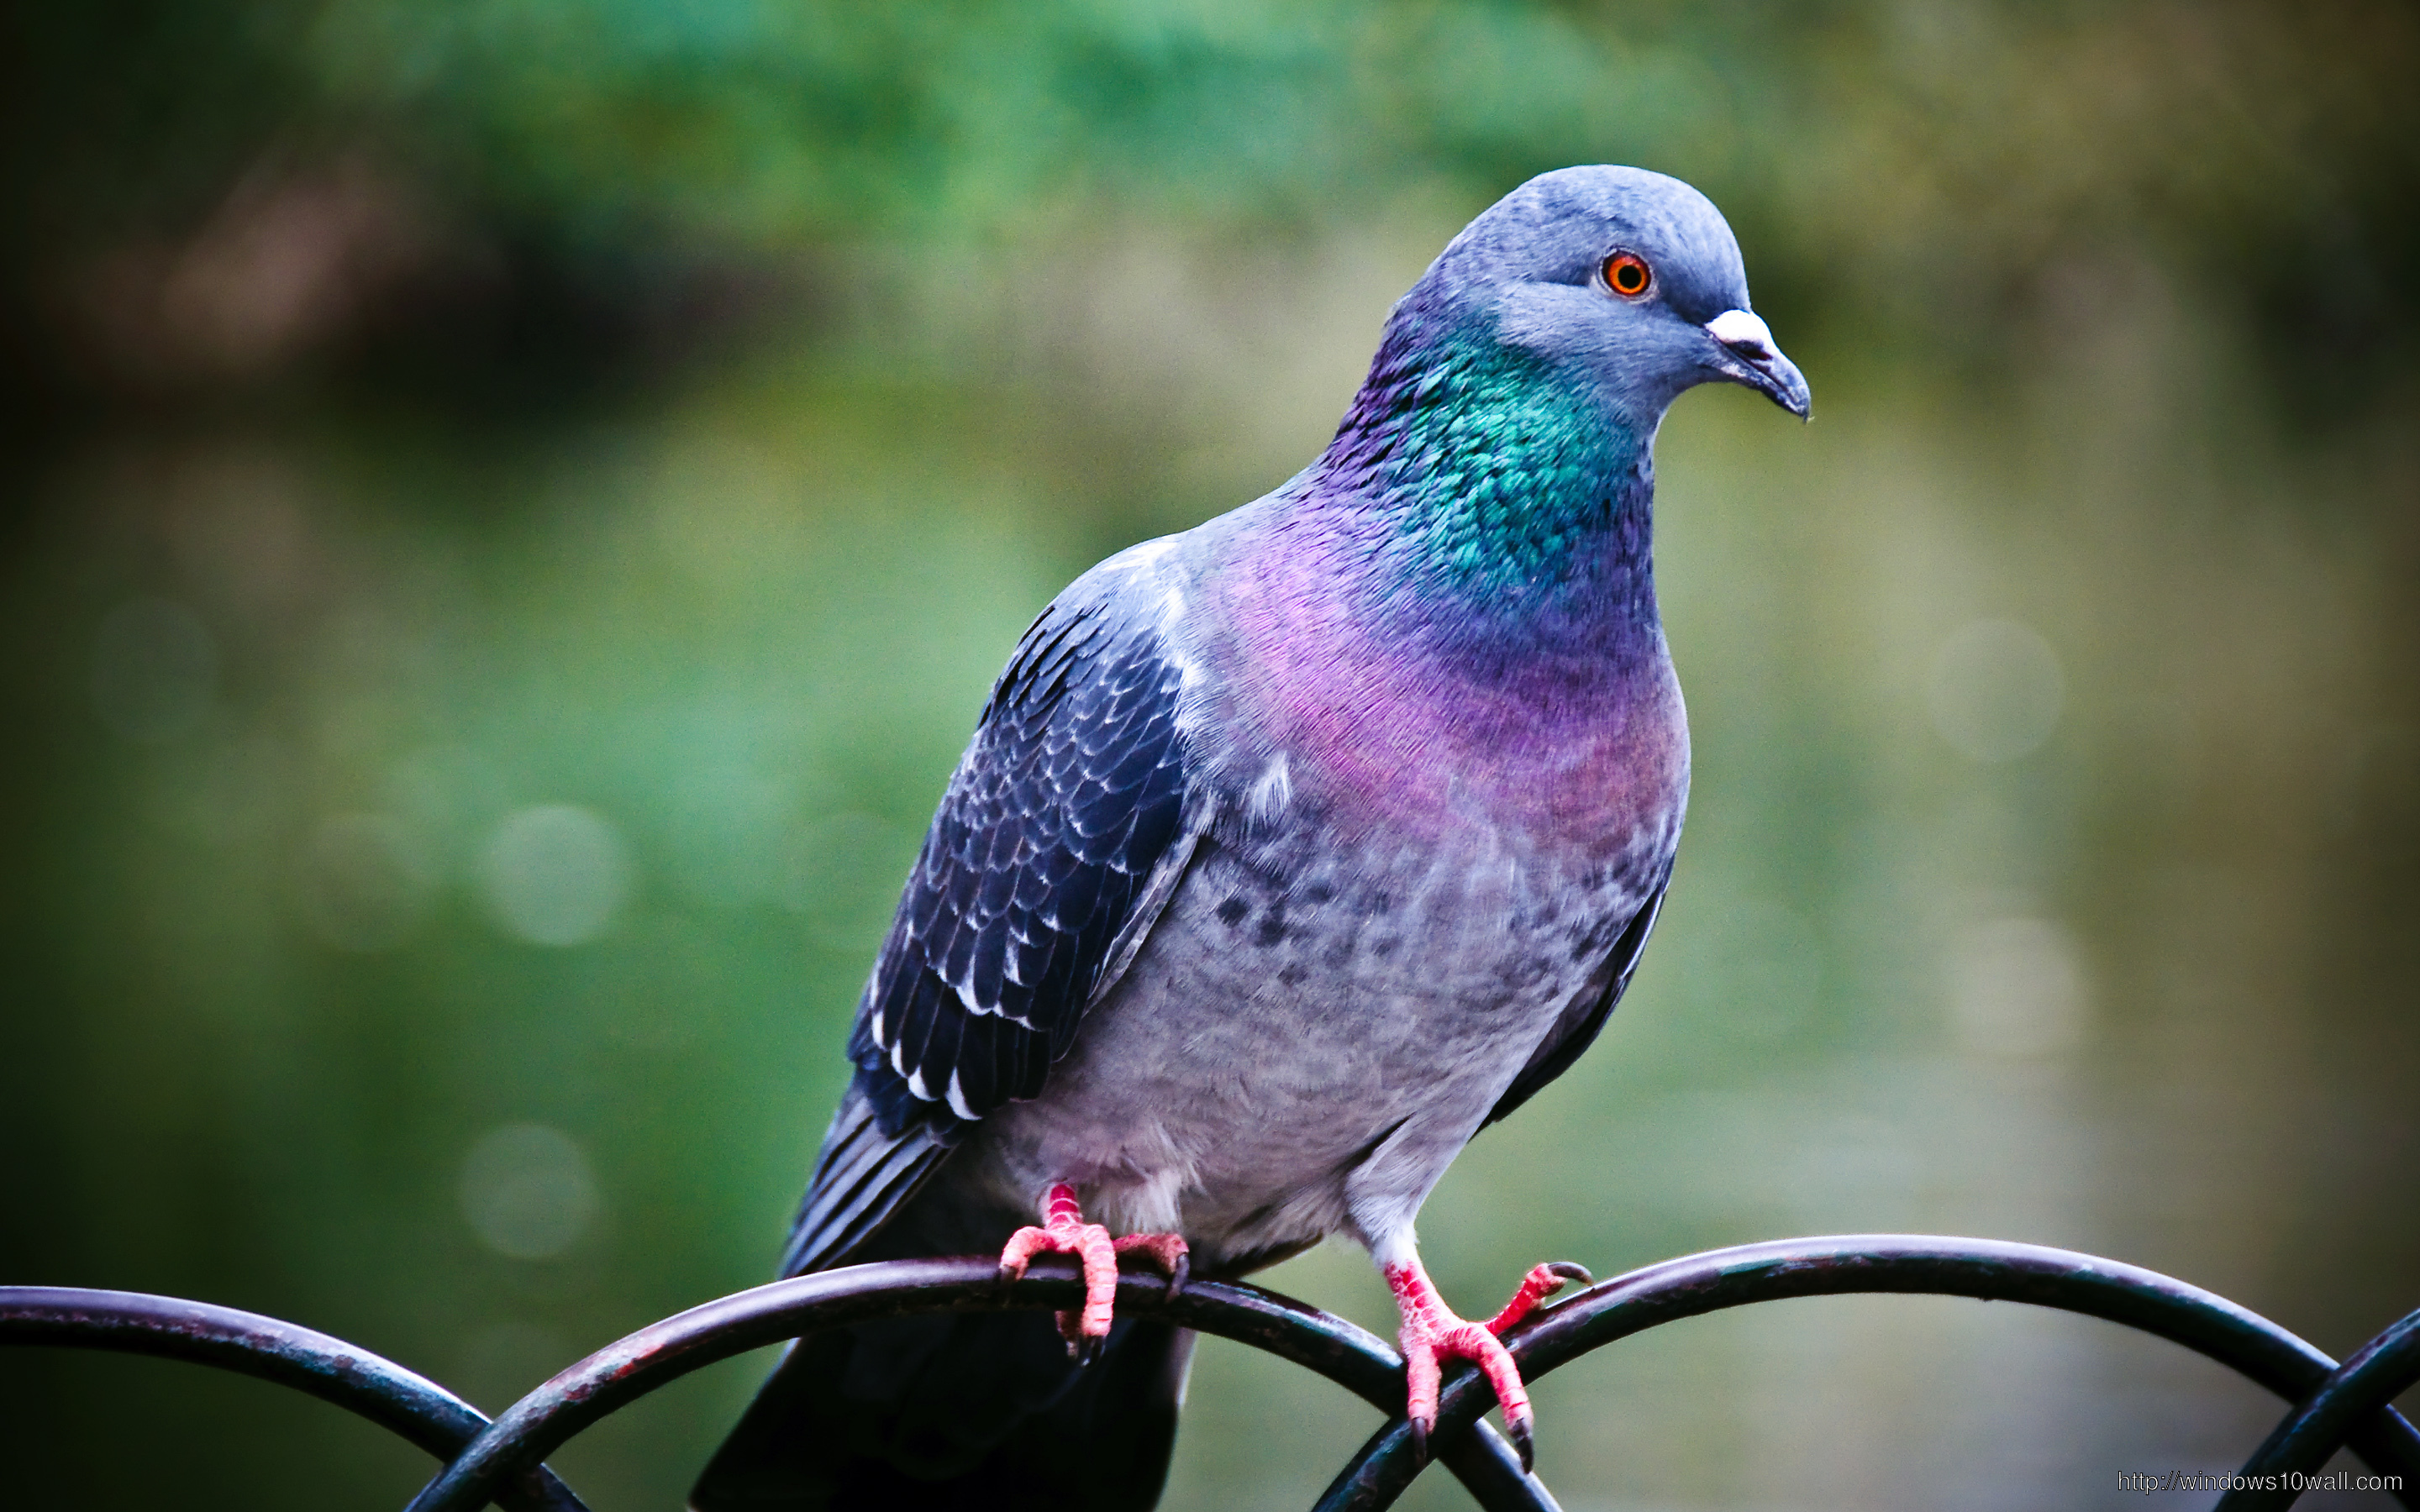 Pigeon Bird Wallpaper